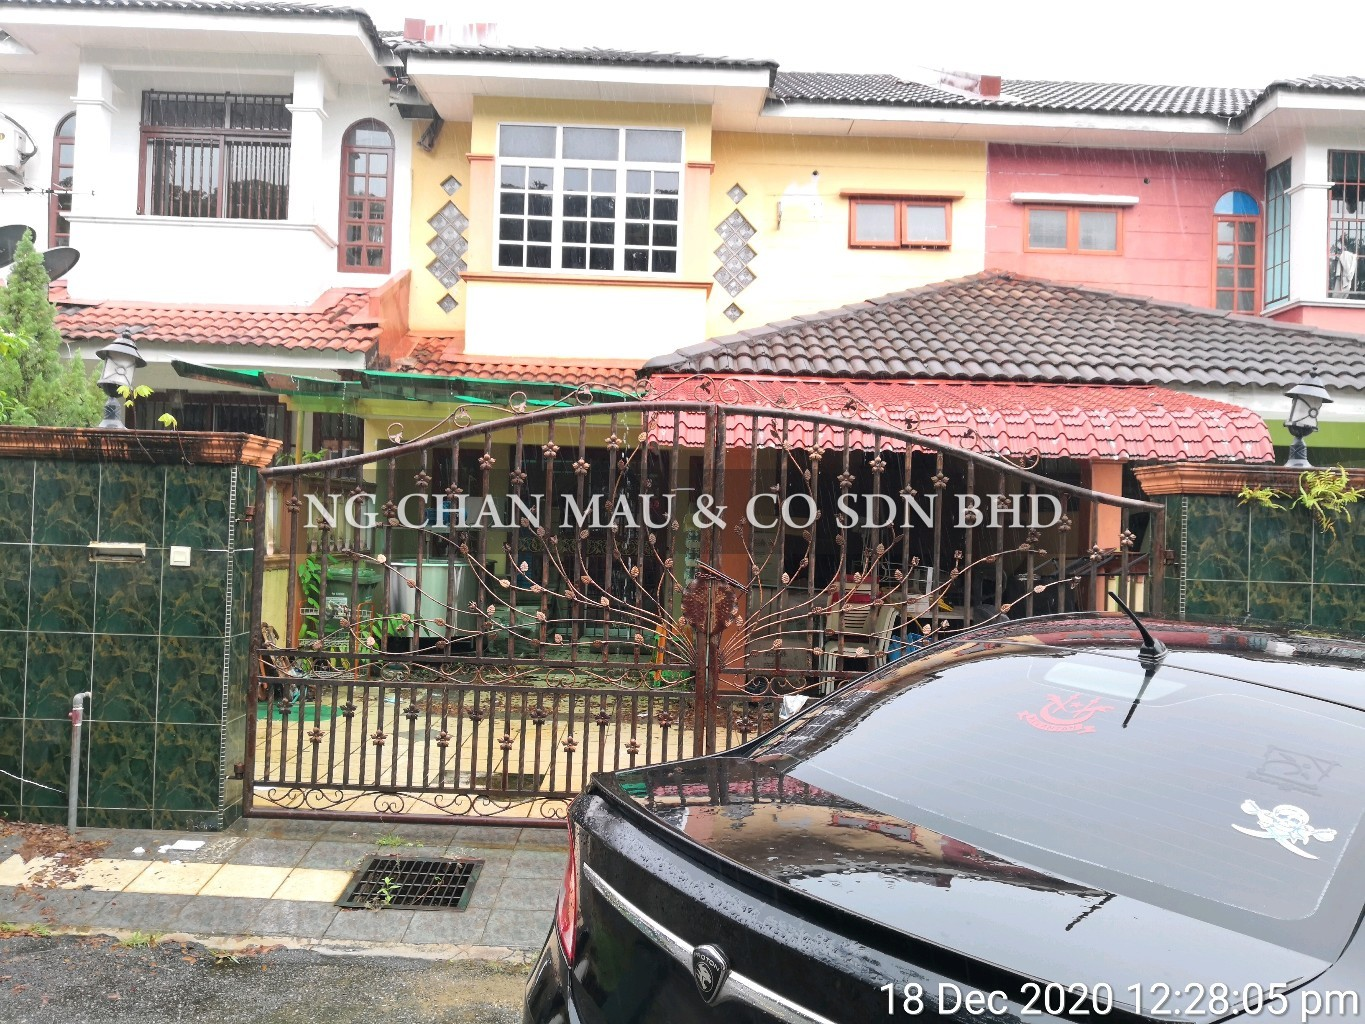 [Short distance to Kuantan's Famous Malls] 2 Storey Terrace House, Renovated (Vacant Unit)